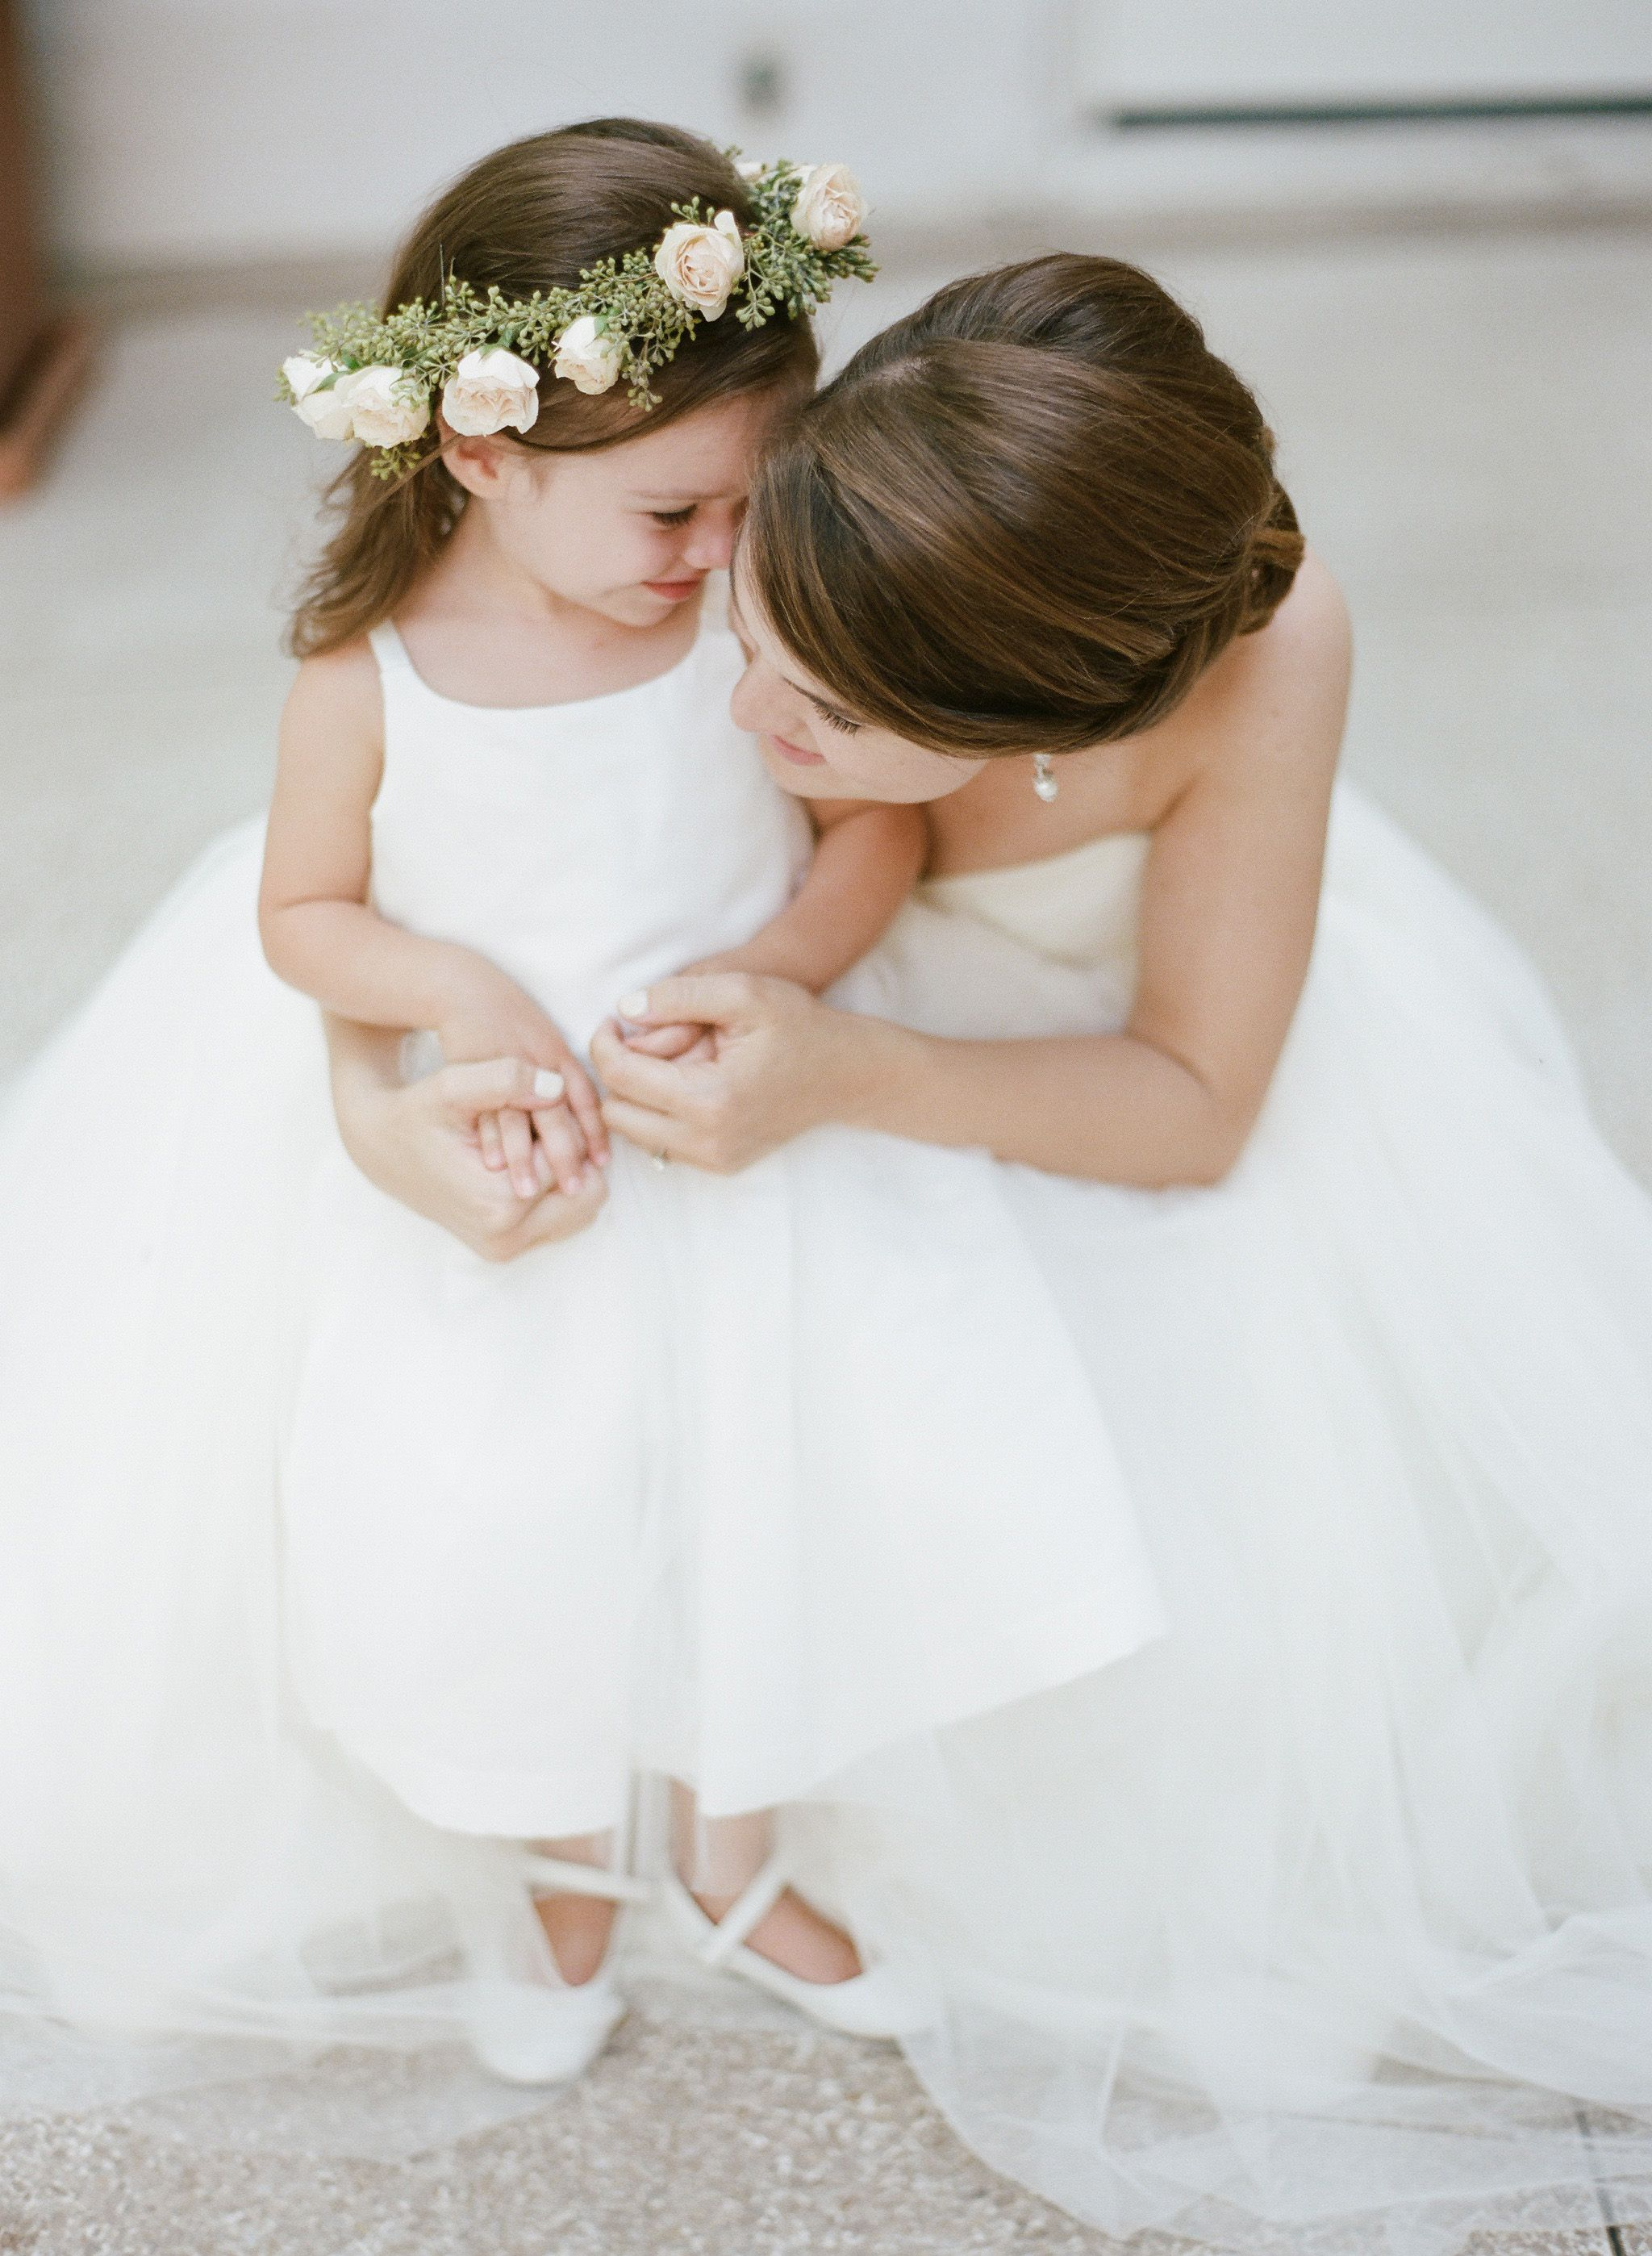 White flower girl dress with rose and eucalyptus crown lbah white flower girl dress with rose and eucalyptus crown izmirmasajfo Gallery